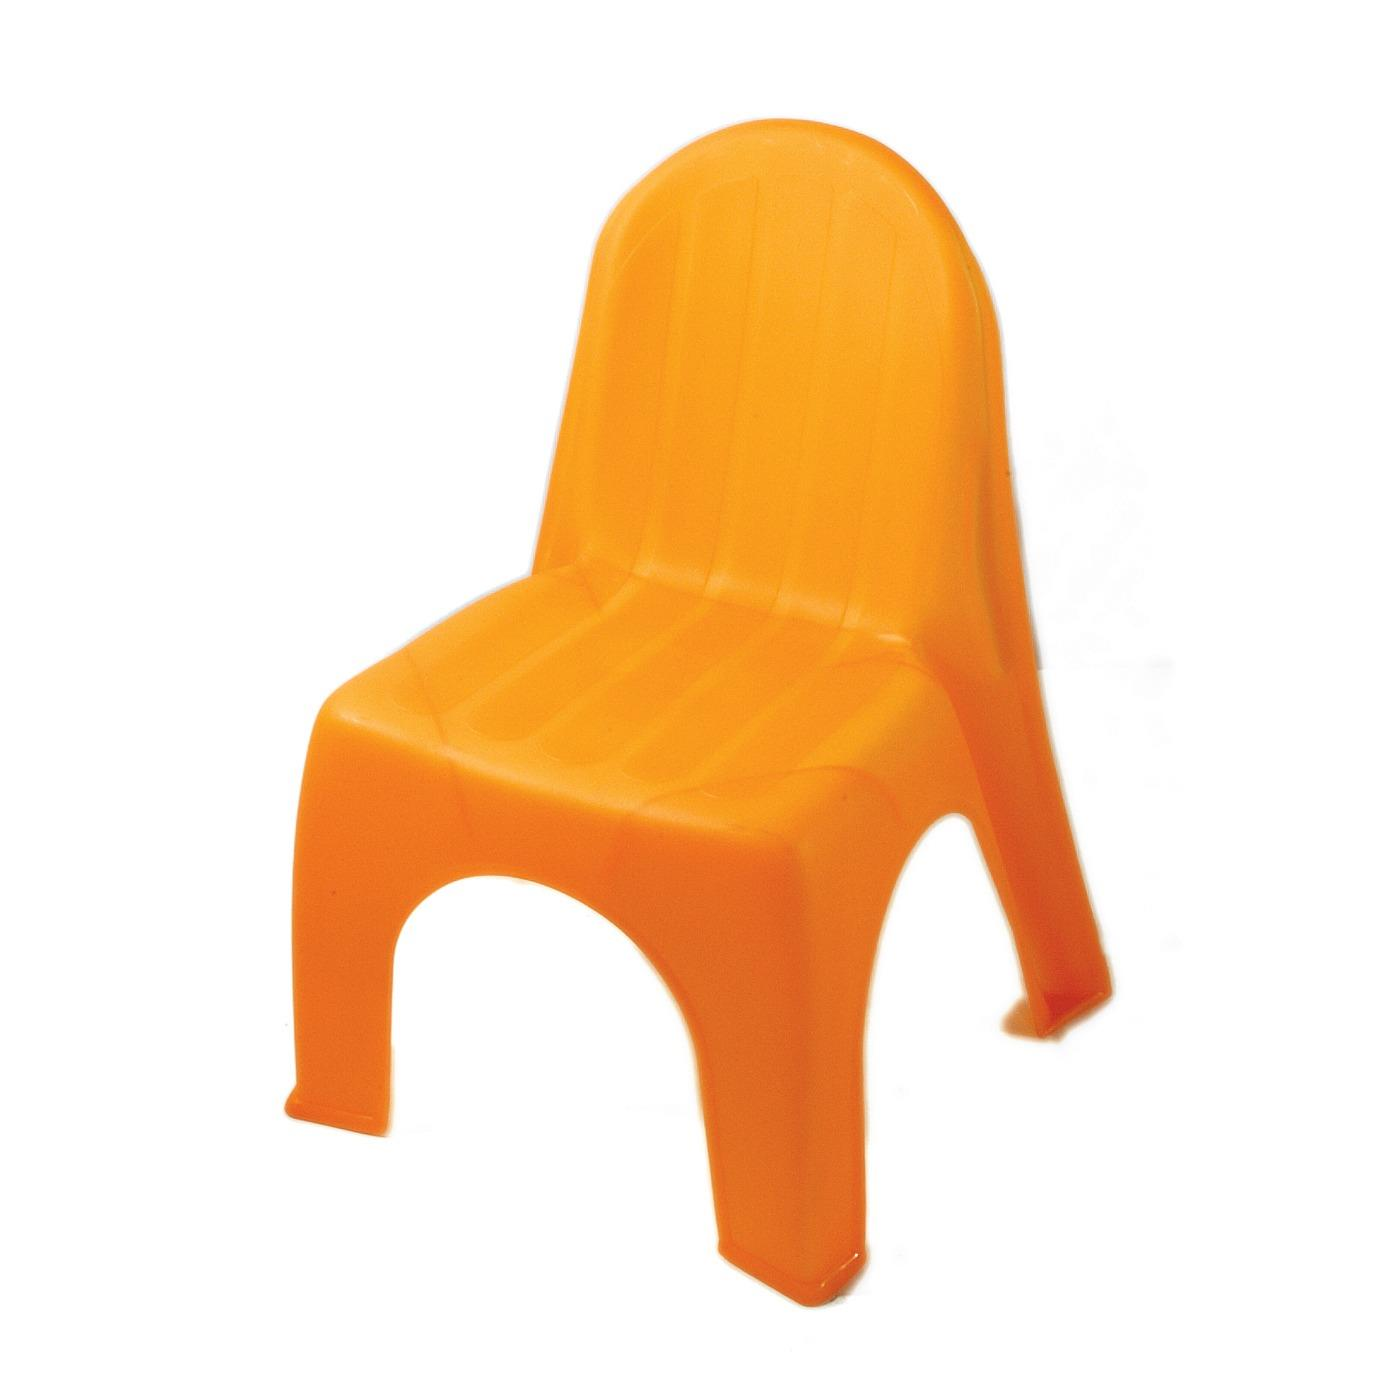 Plastic Children's Chair - Orange